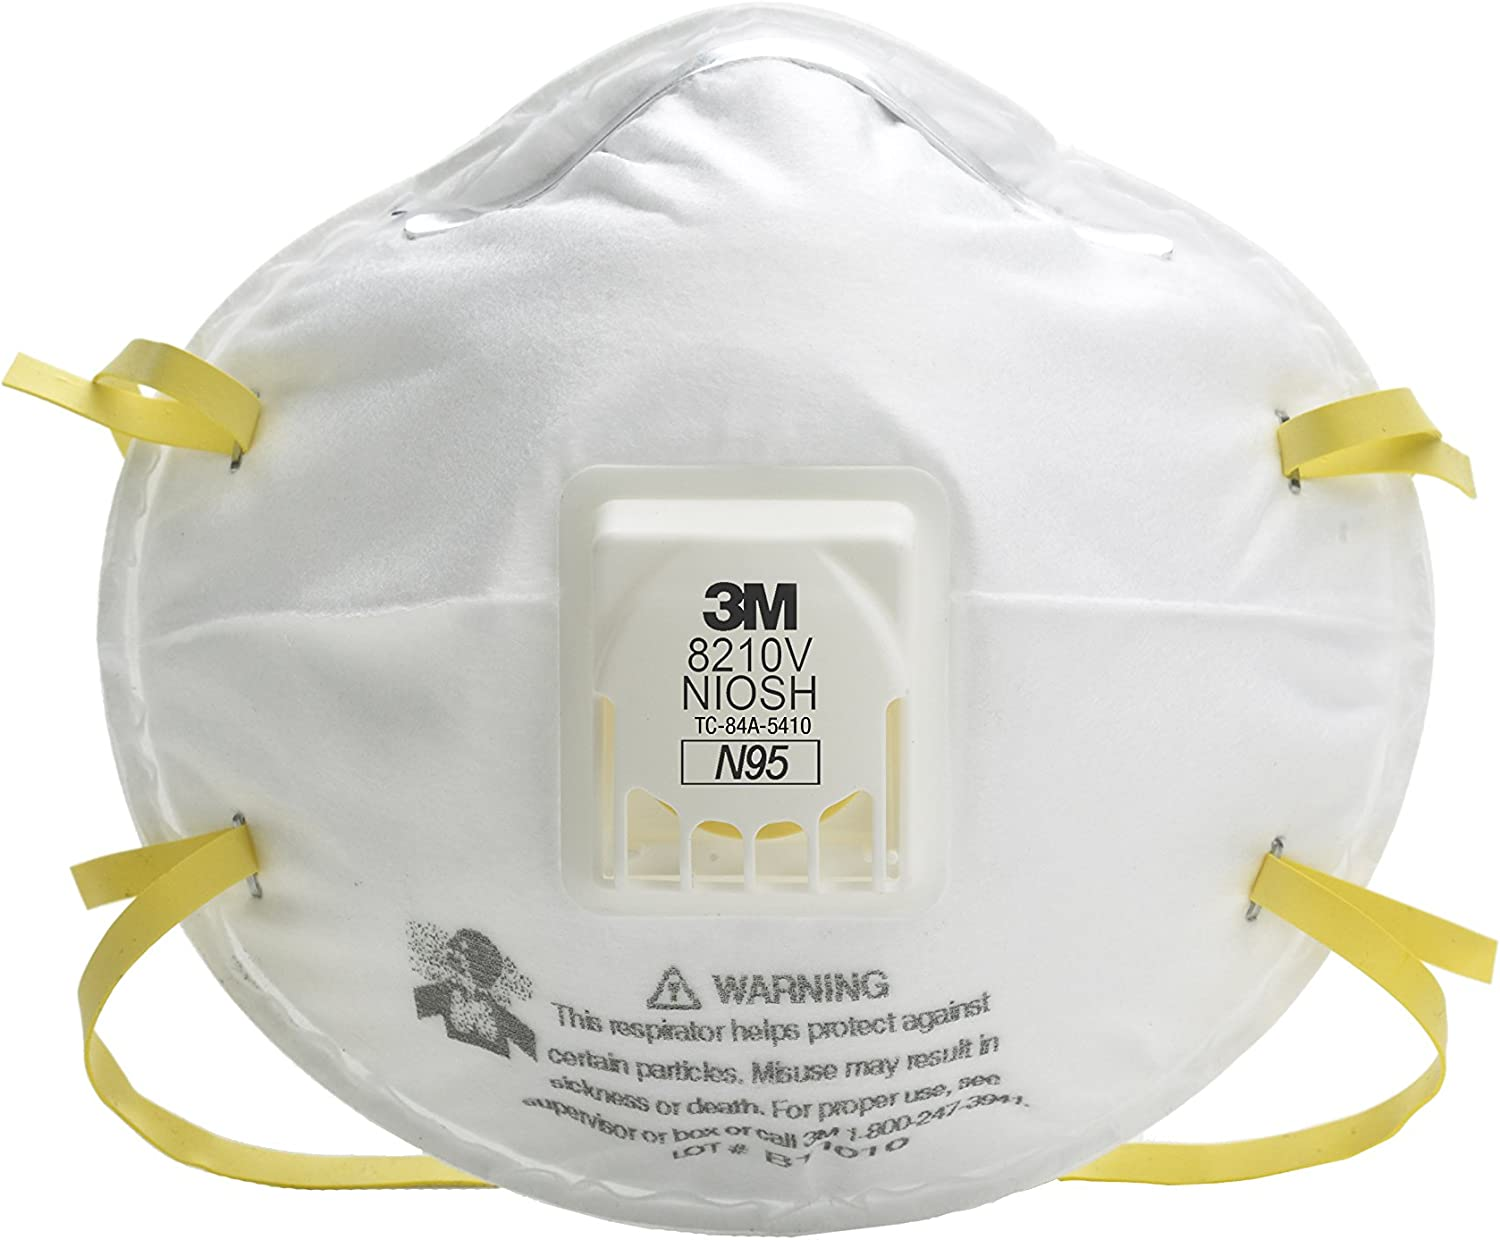 Respirator box Protection Particulate 30 N95 tm 8210v 3m Respiratory